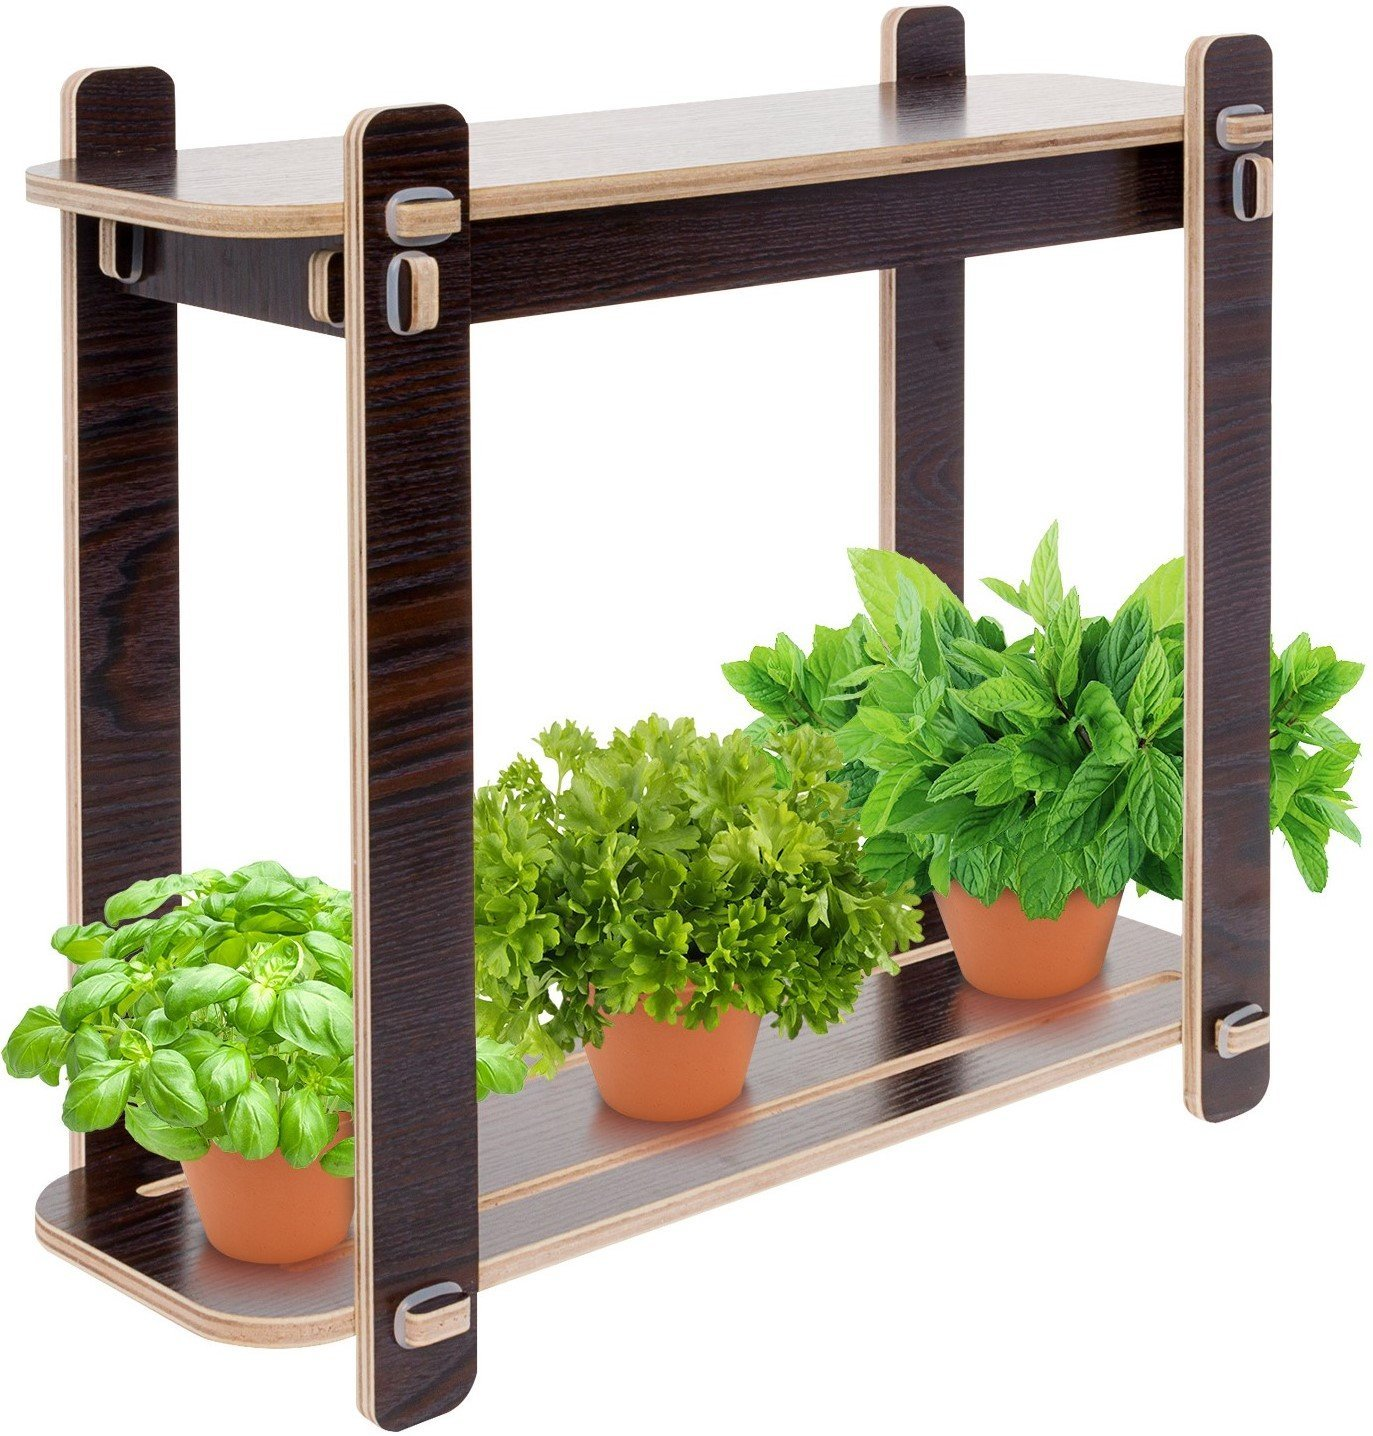 Mindful Design Wood Finish LED Indoor Garden - Grow Herbs, Succulents,Vegetables